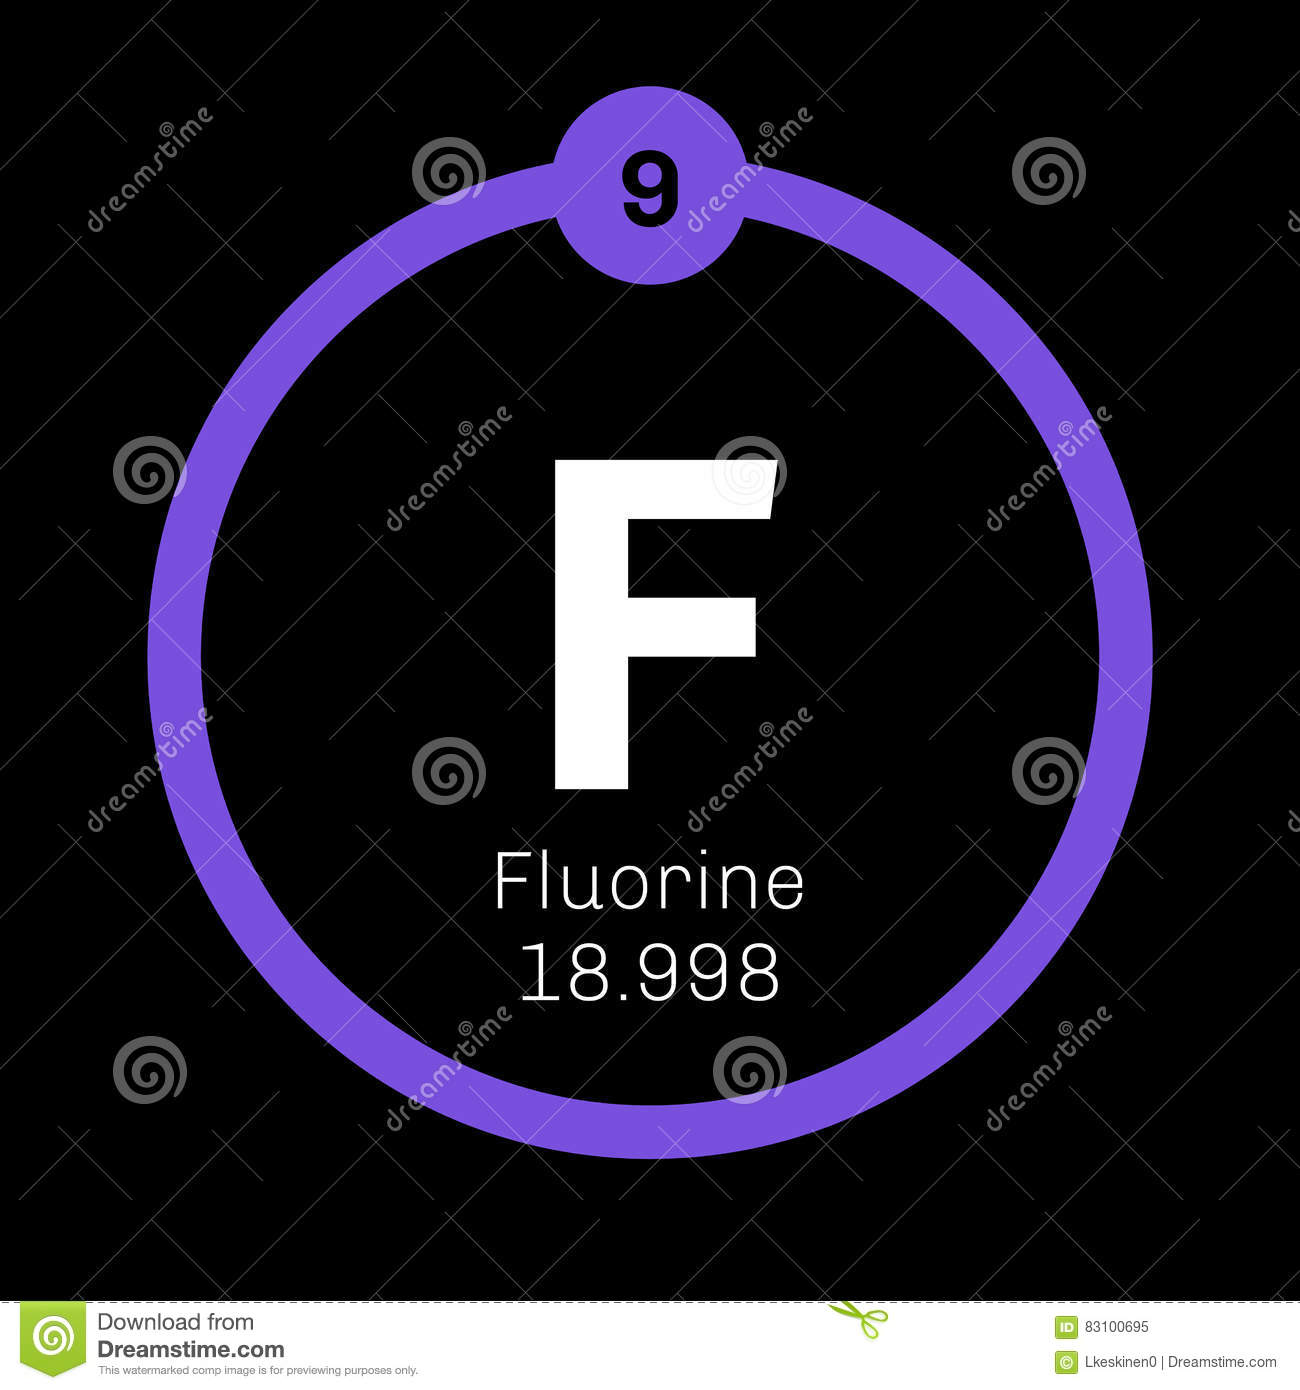 Fluor chemisch element